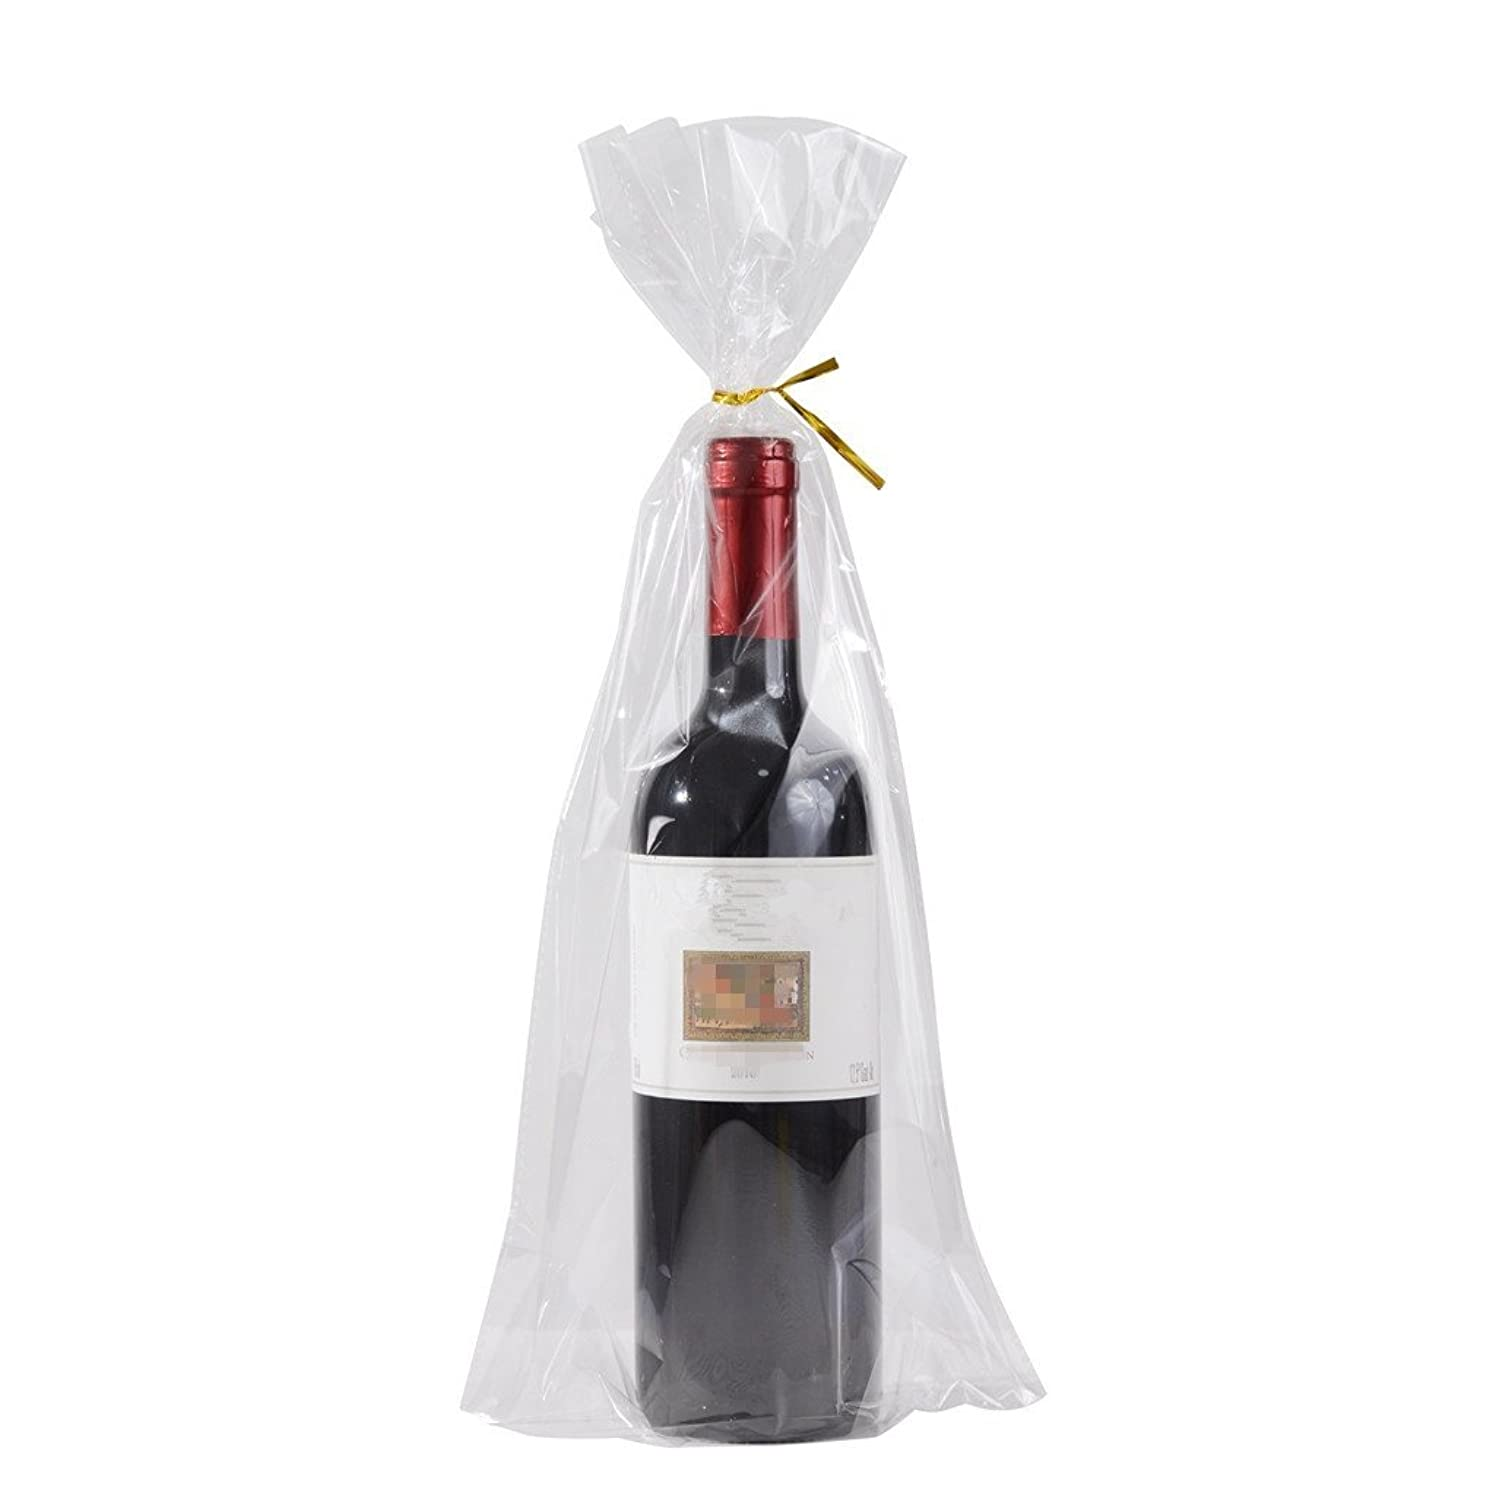 100 Gusset Cello Bags with Ties - 2.8 mil Big Size Gift Wrap Cellophane Bag - Clear Wine Bottle Gift Bags Large for Favor (8